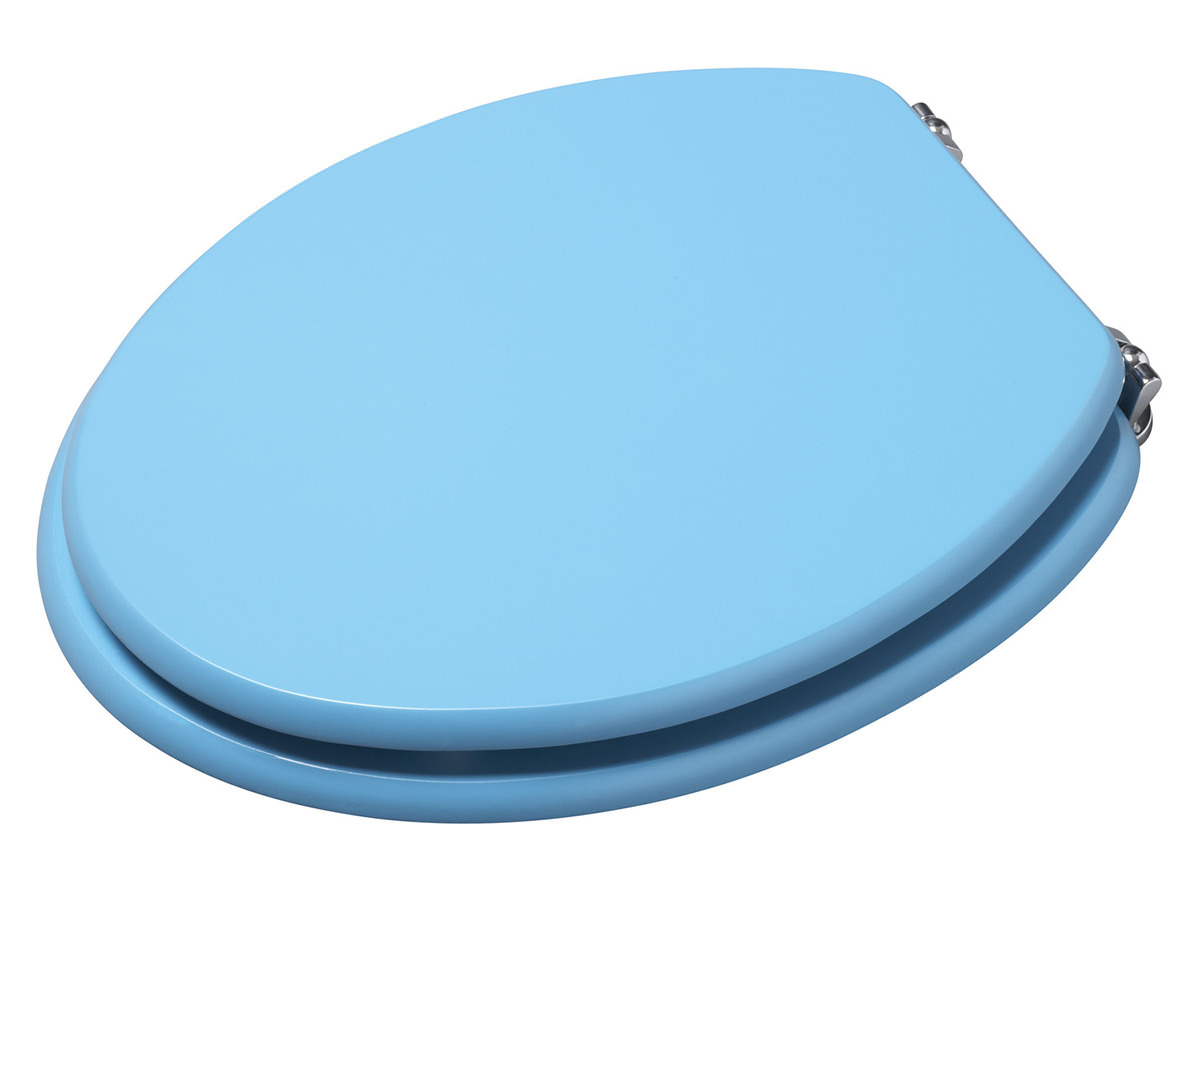 Croydex Blue Coloured Toilet Seat WL522224